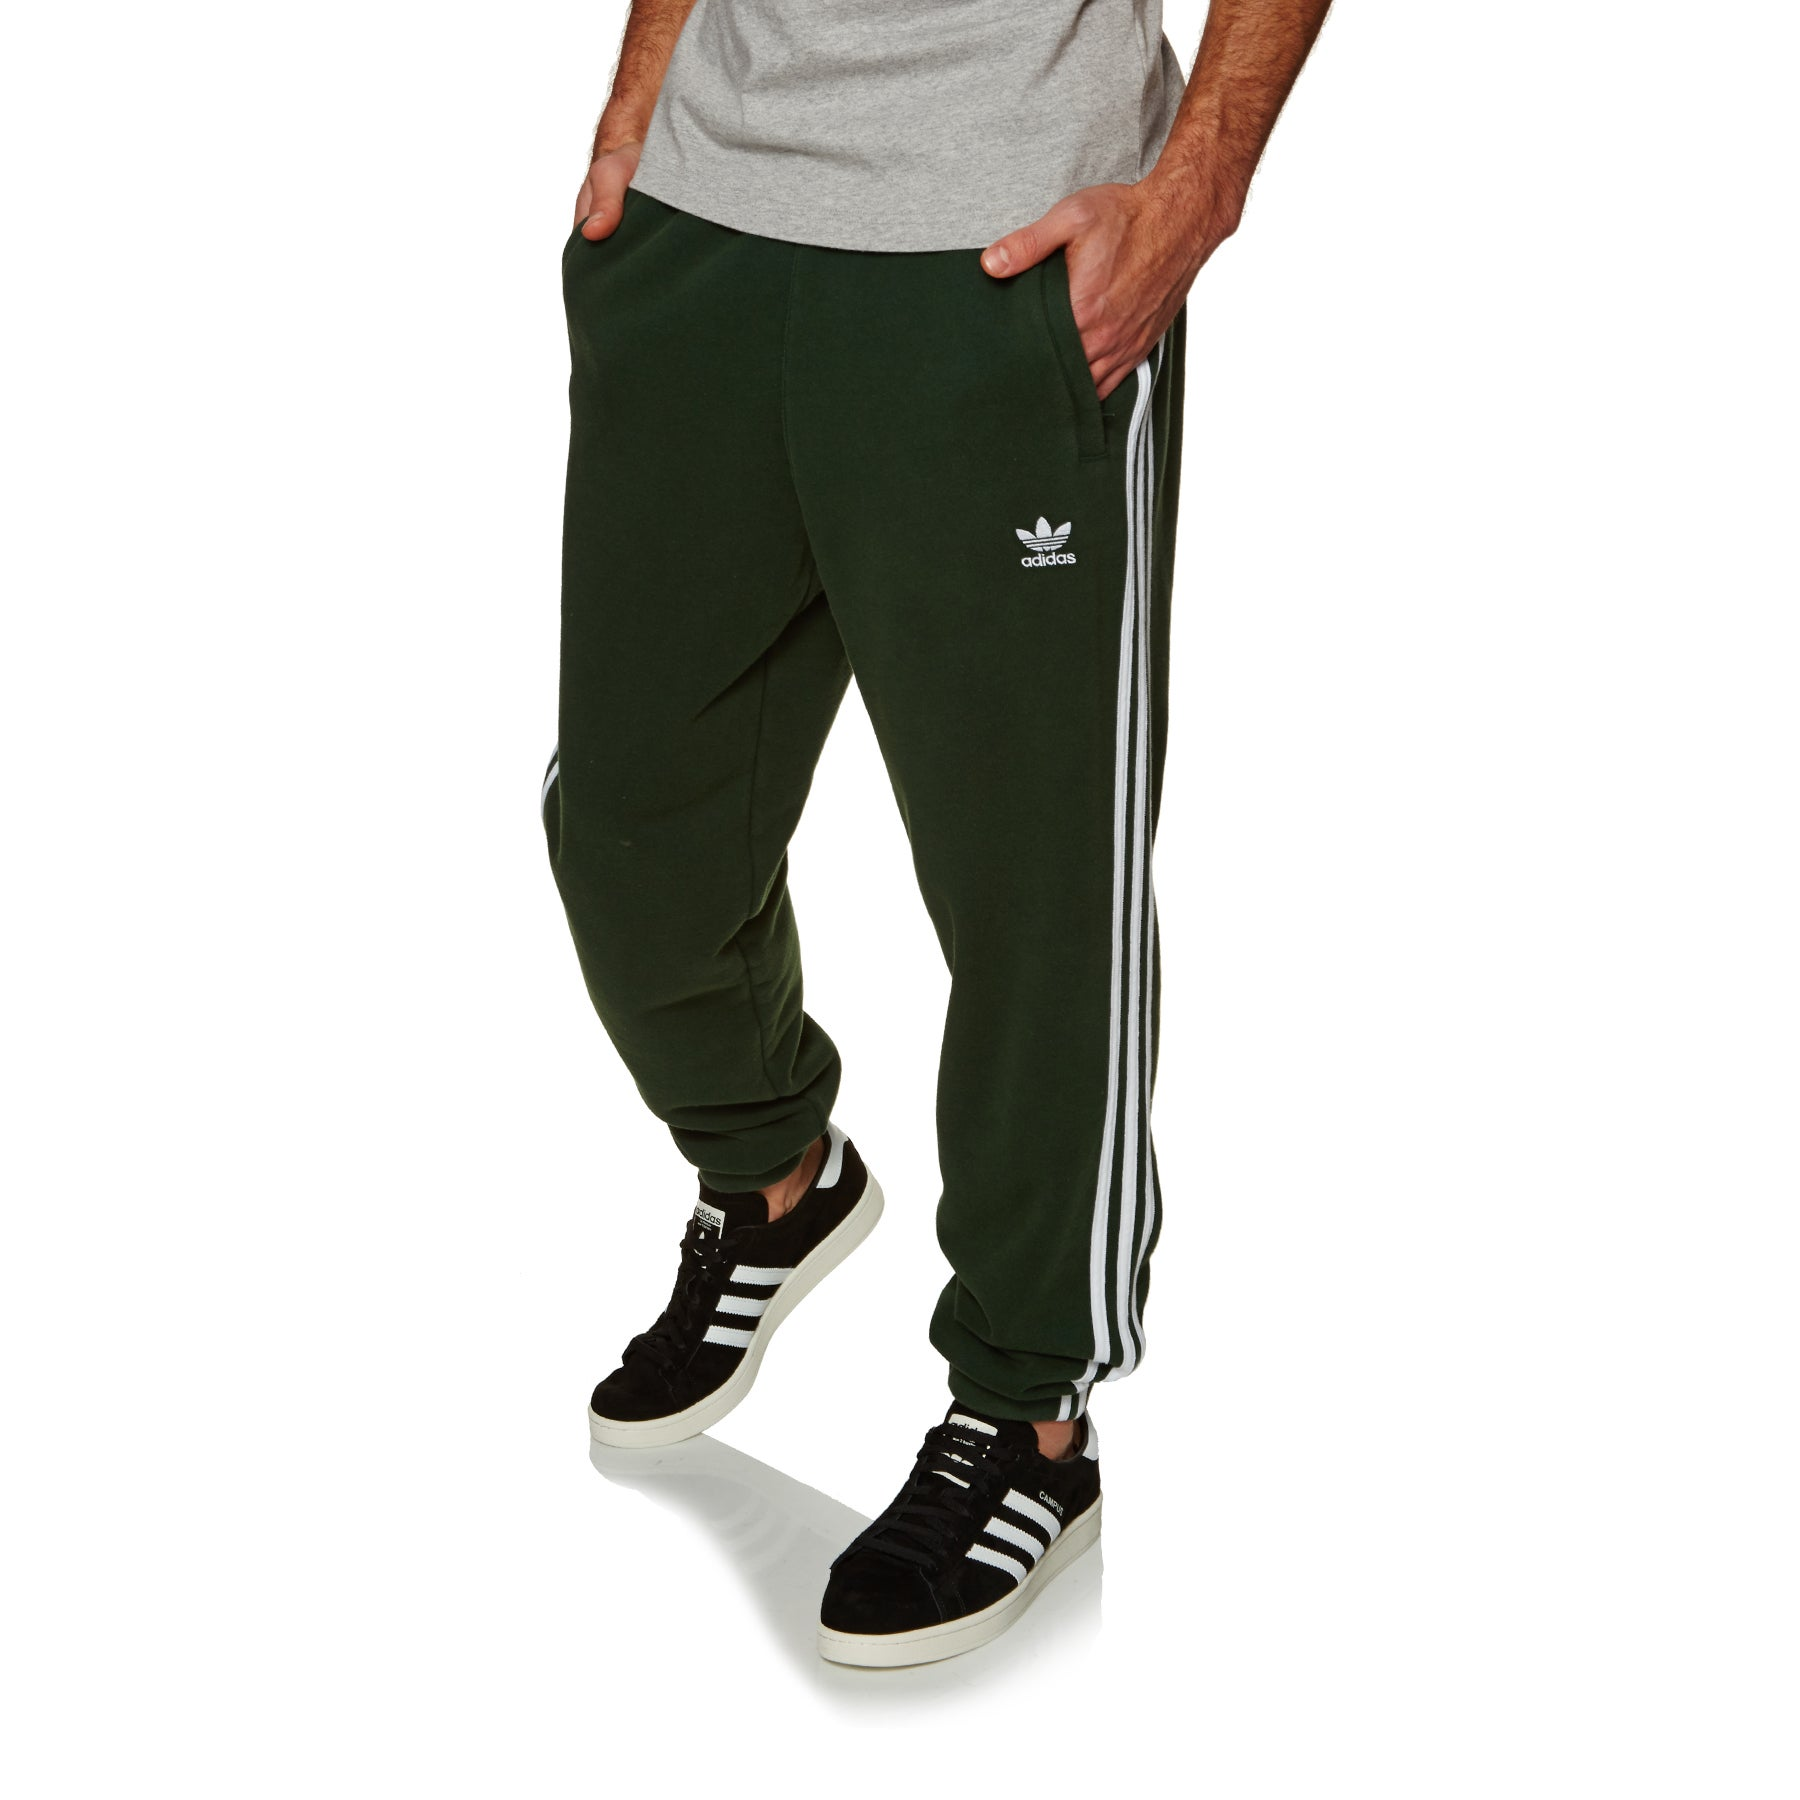 b23976a1577d Adidas Originals 3 Stripe Loungewear available from Surfdome